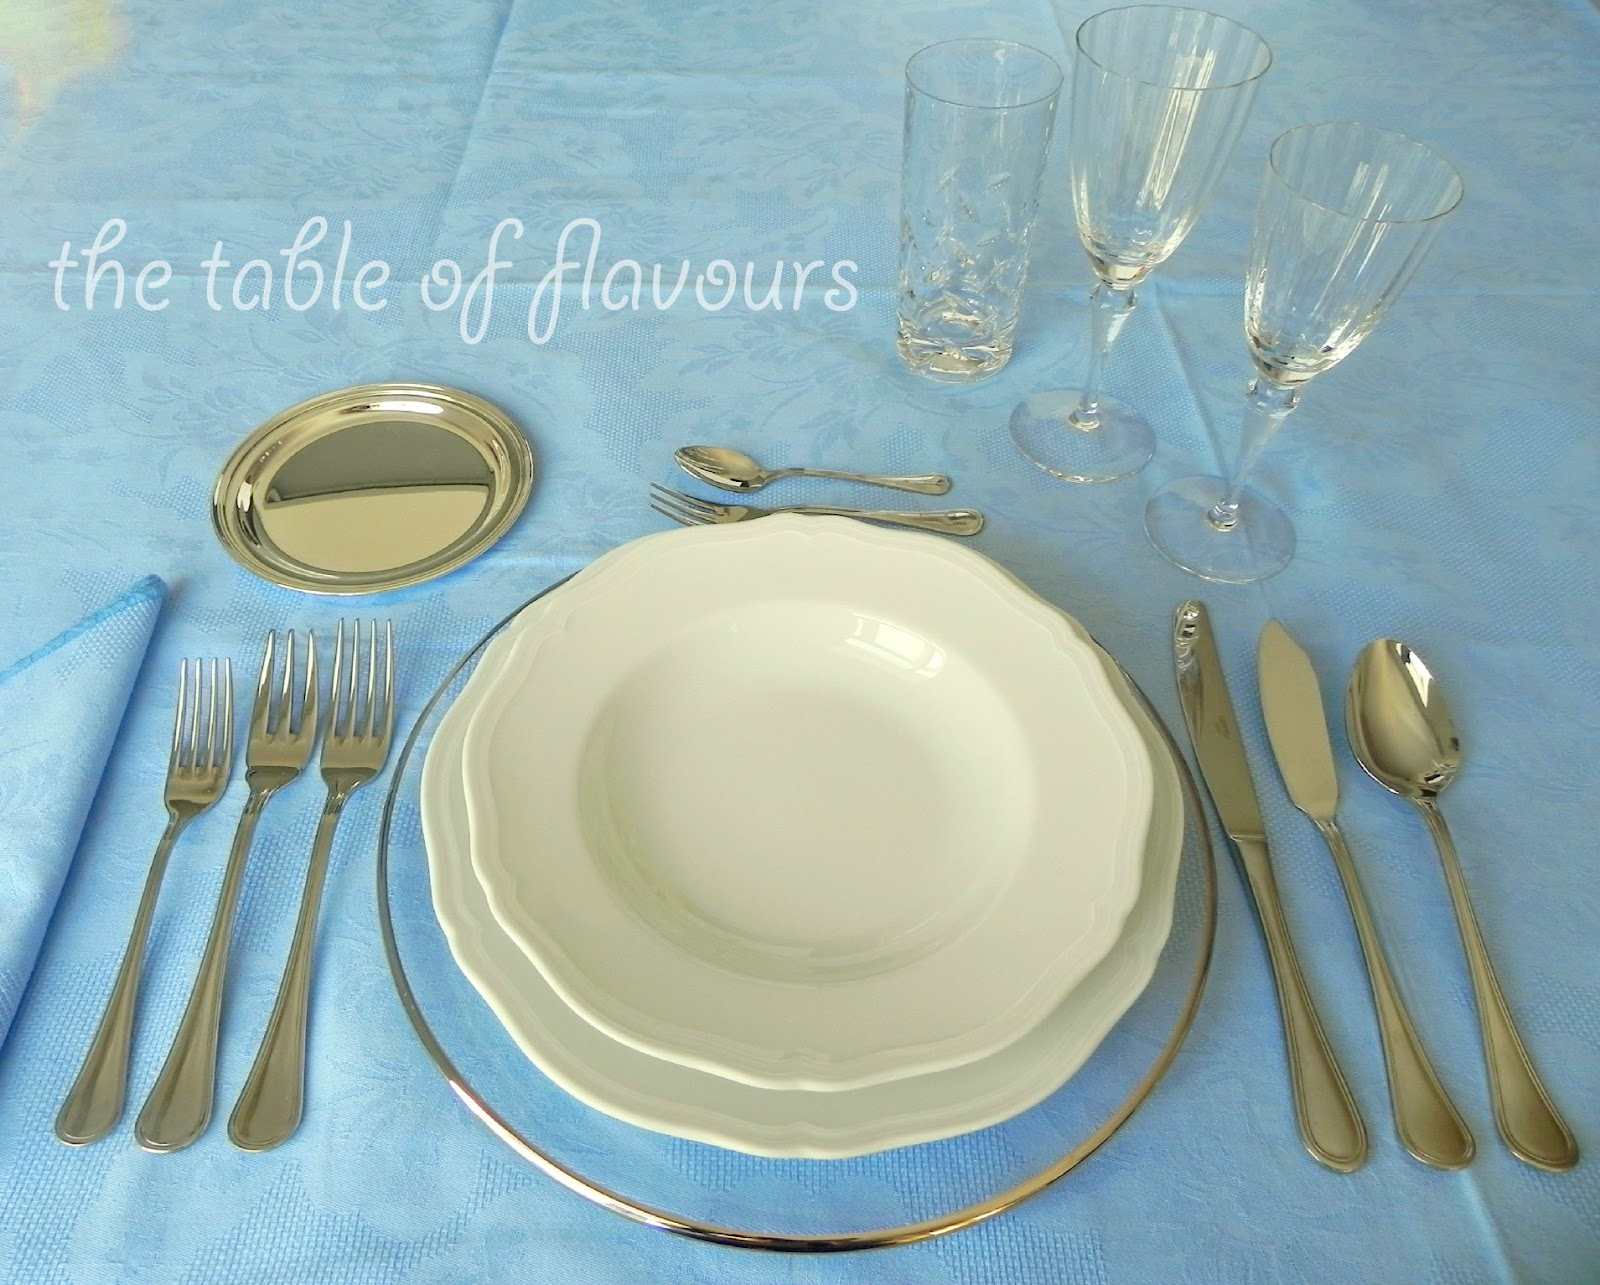 The Table of Flavours 5 Basic Rules for the Formal Table  : settingtablel from thetableofflavours.blogspot.com size 1600 x 1285 jpeg 335kB